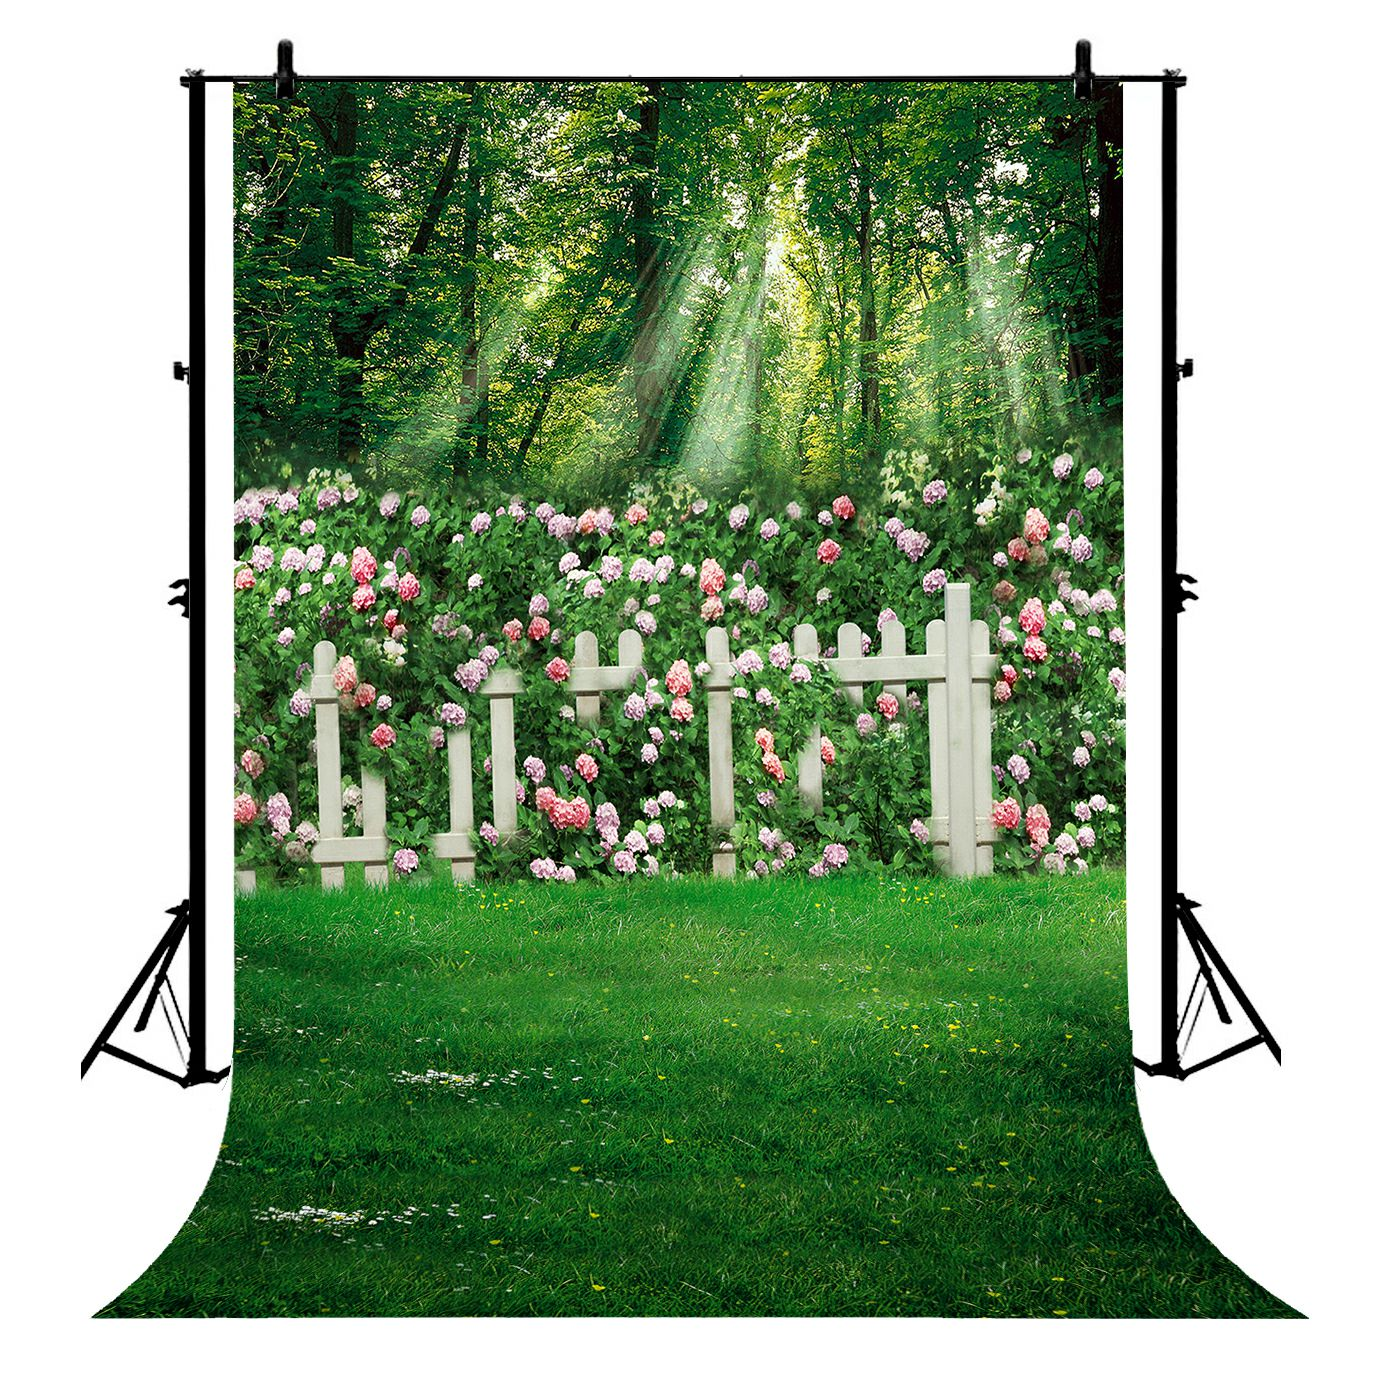 GCKG 7x5ft Spring Family Garden Pink Flowers Wedding Polyester Photography Backdrop Photo Background Studio Props - image 4 de 4